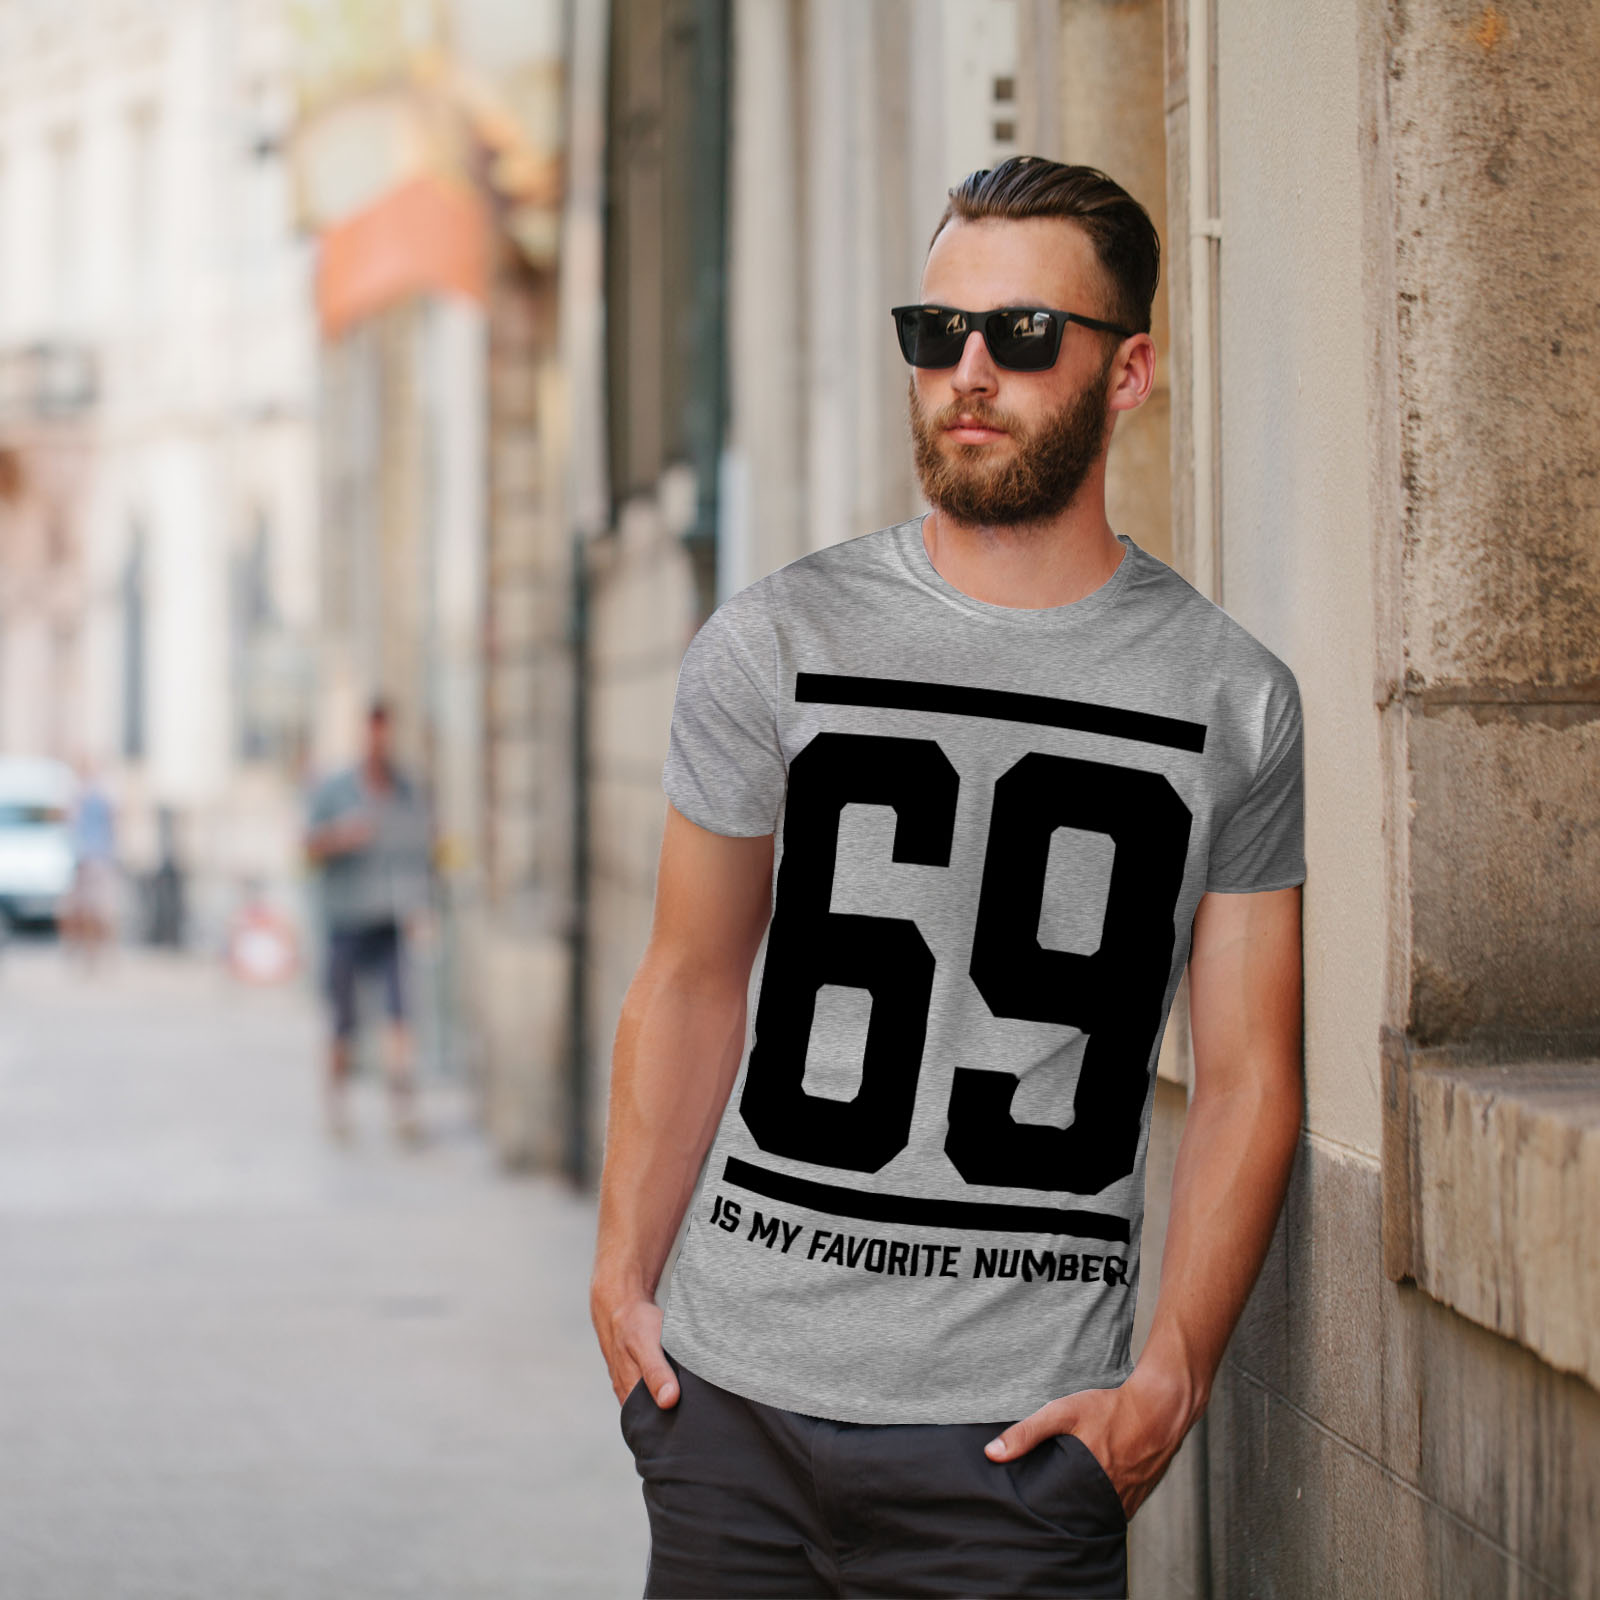 Wellcoda-69-Favorite-Number-Mens-T-shirt-Sports-Graphic-Design-Printed-Tee thumbnail 17